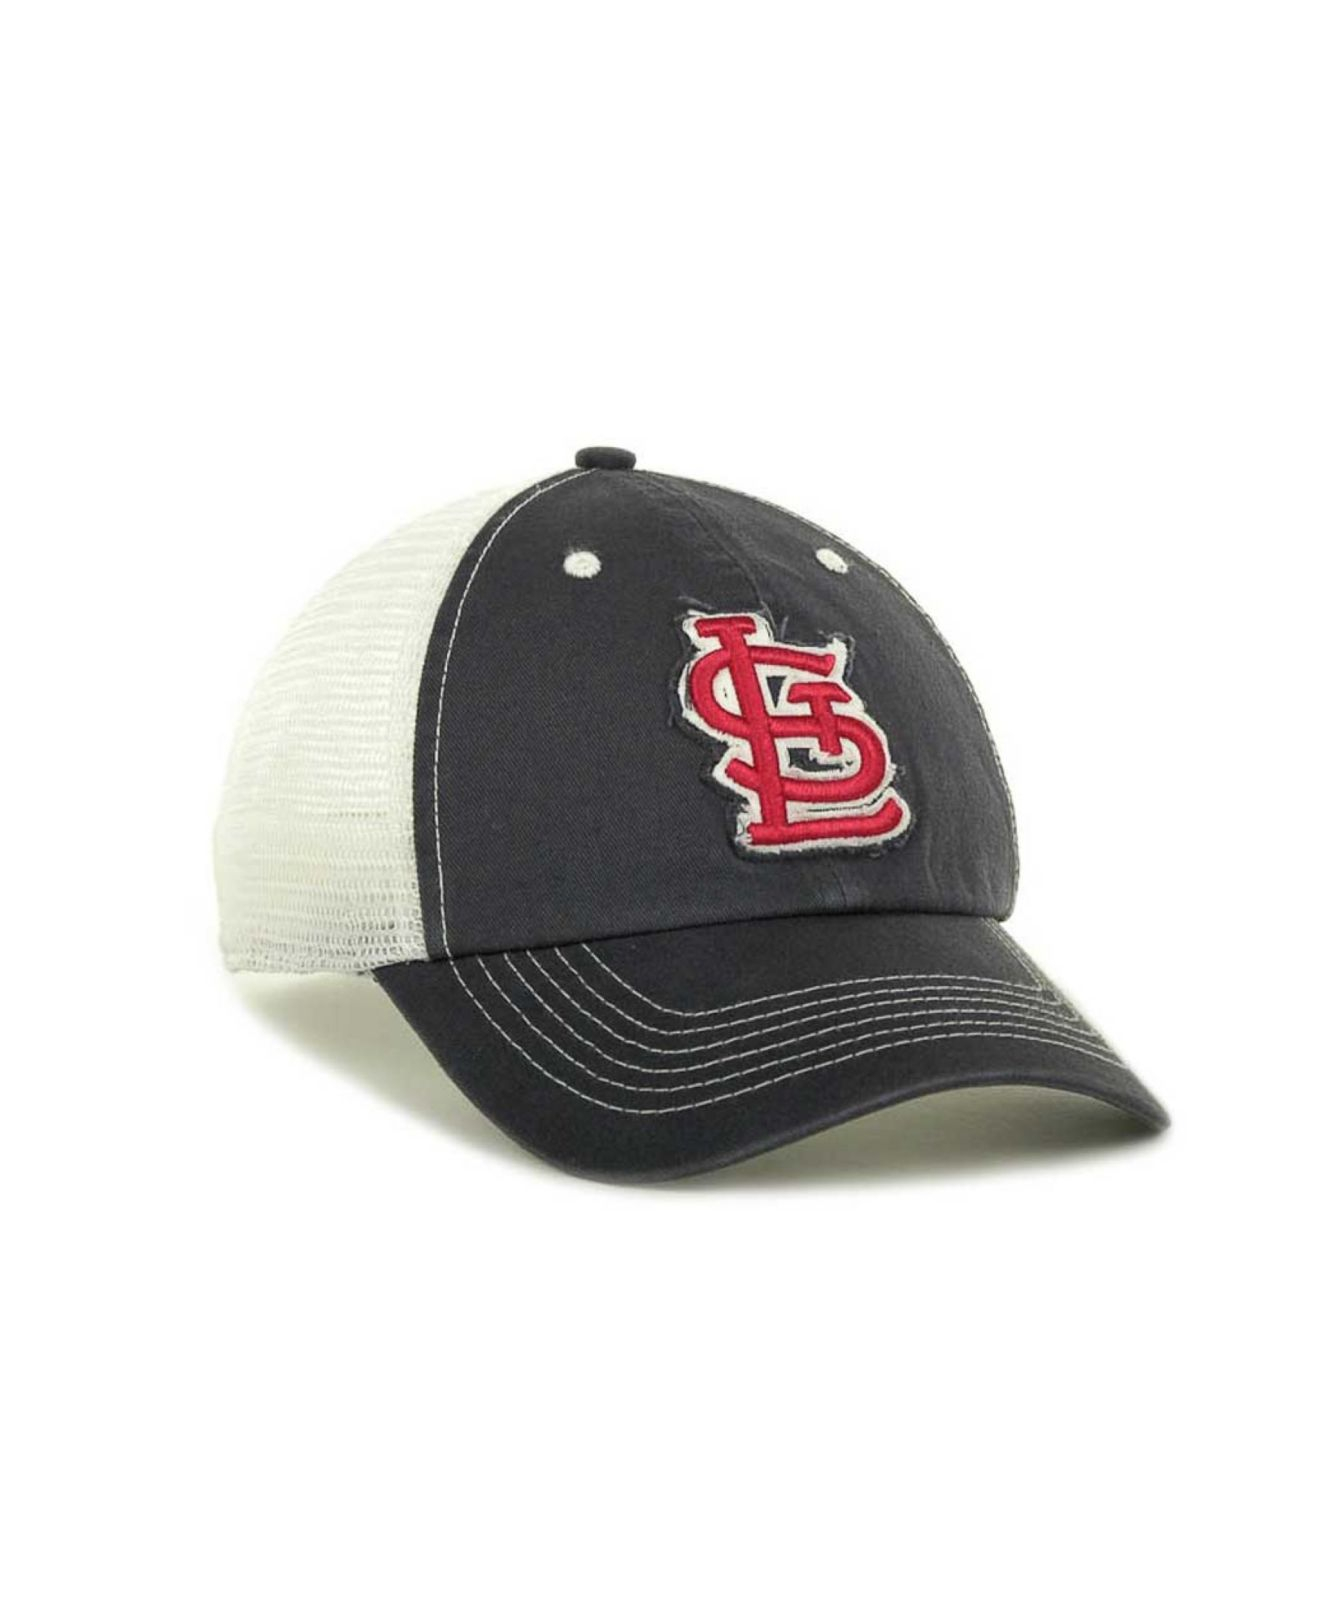 c2808986677 canada st. louis cardinals hat 7d705 ae3f3  norway lyst 47 brand st louis  cardinals blue mountain franchise cap in 6b93f 70ce1